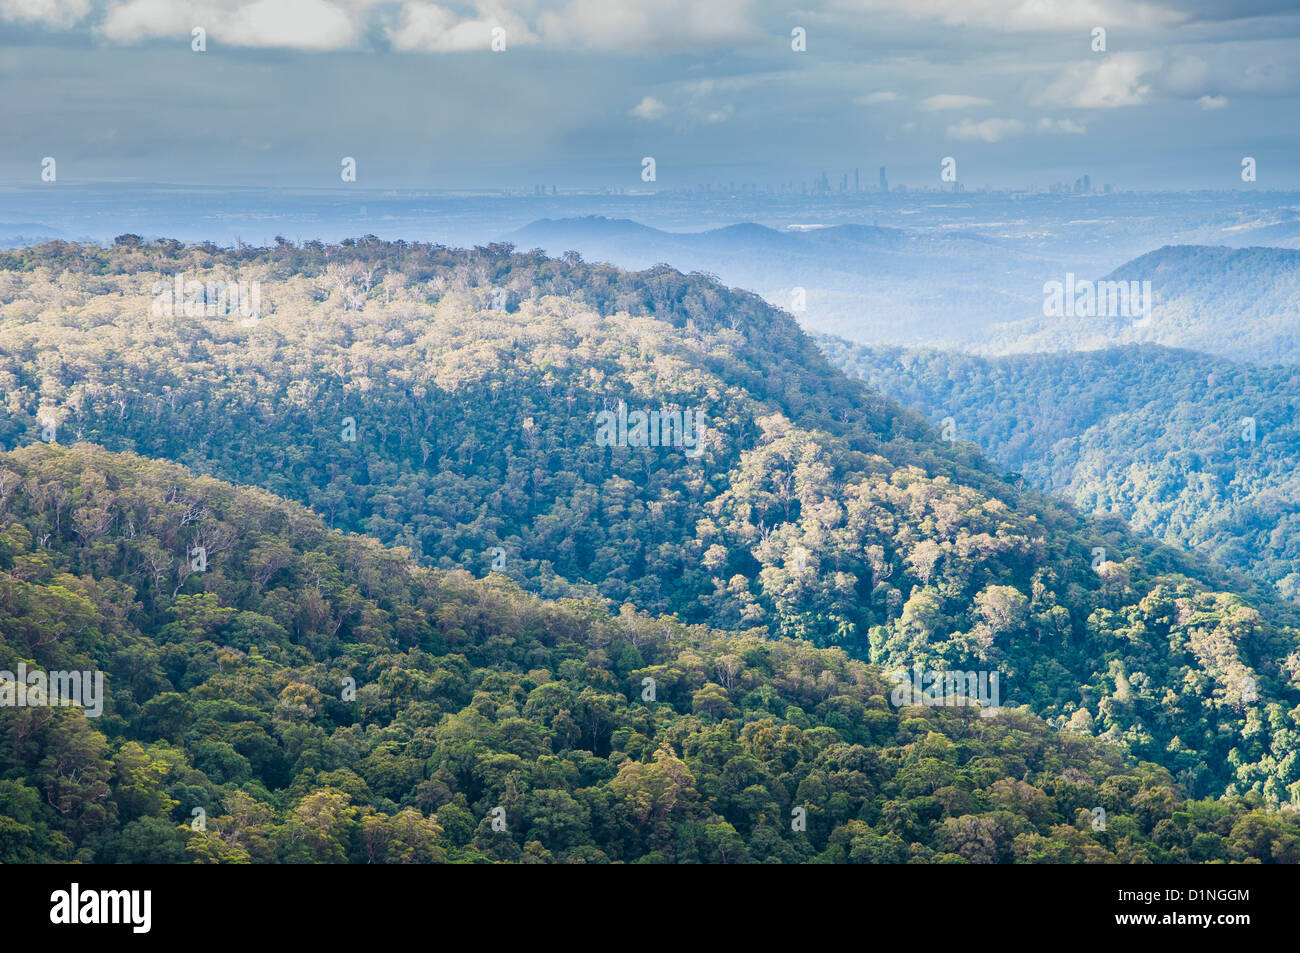 View of Surfers Paradise from Springbrook National Park, Gold Coast hinterland, Queensland, Australia - Stock Image